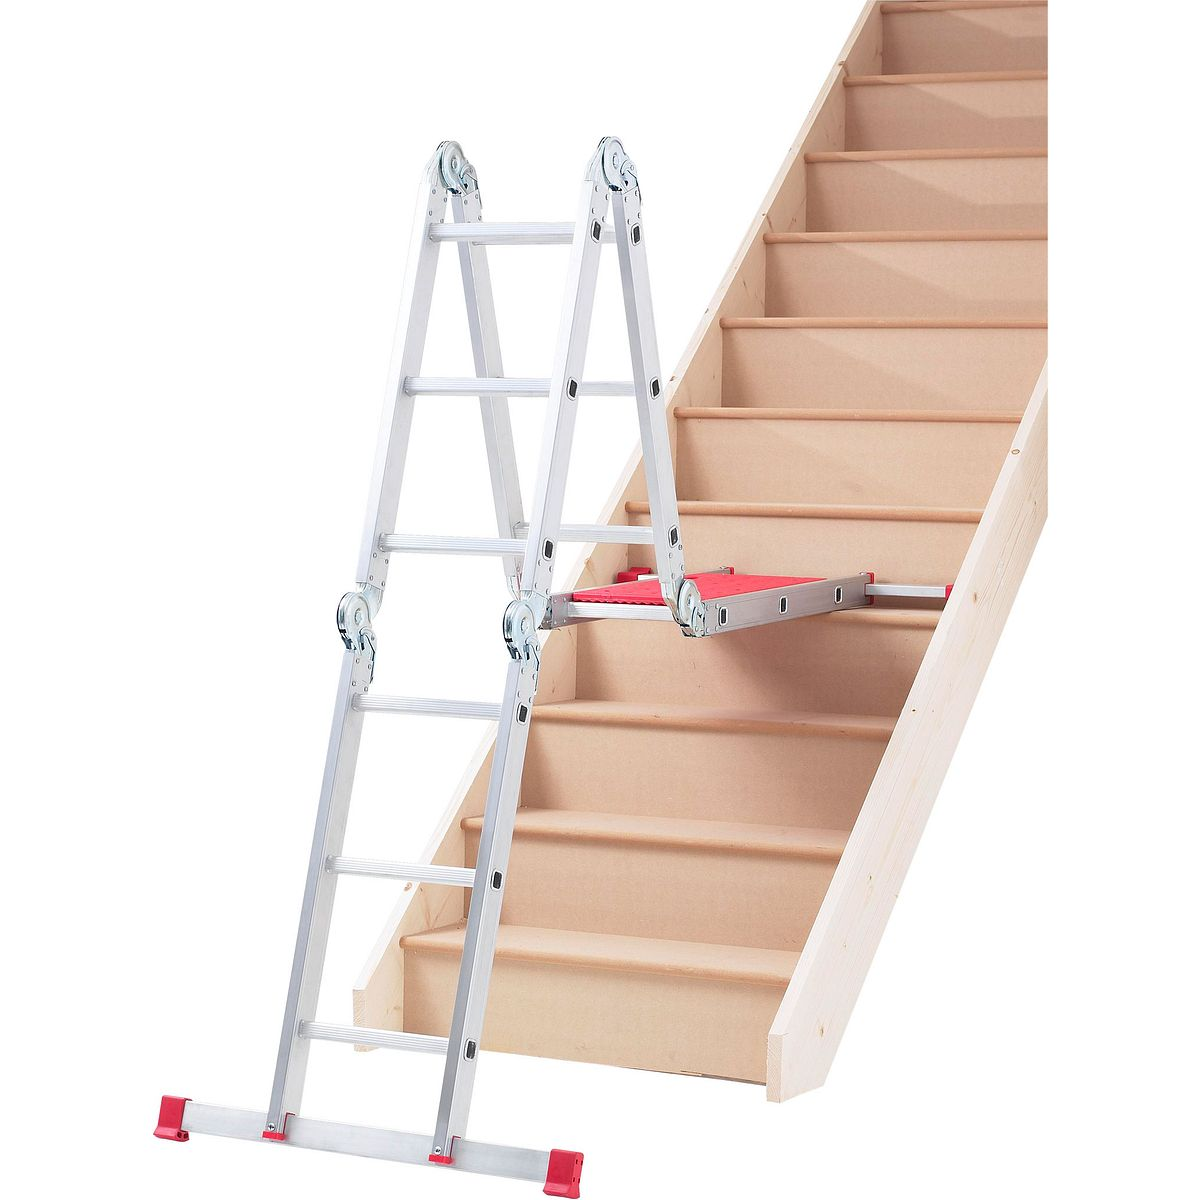 75012 Combination Ladders Werner Eu